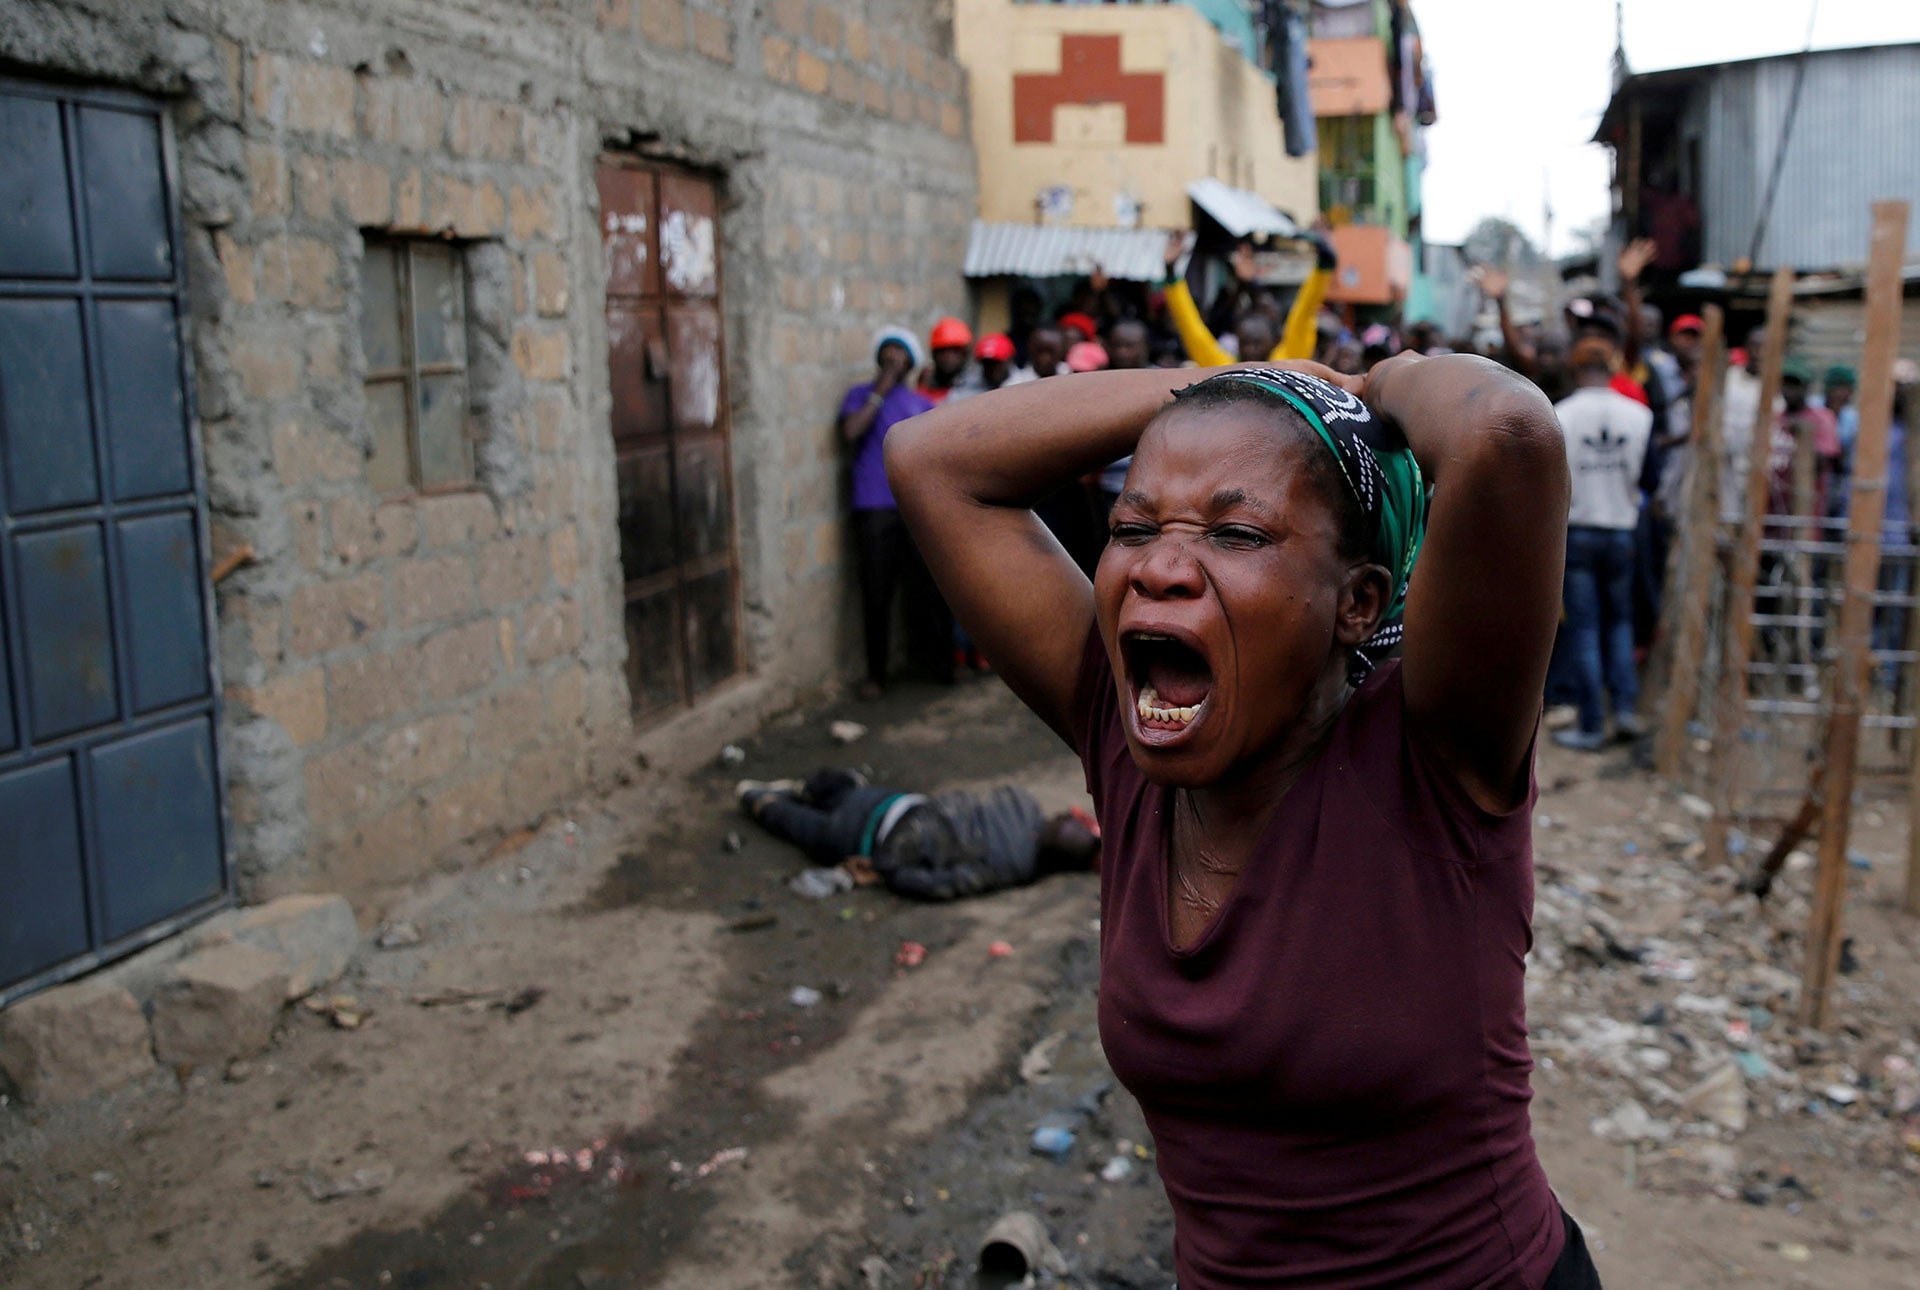 A woman screams as she mourns the death of a protester